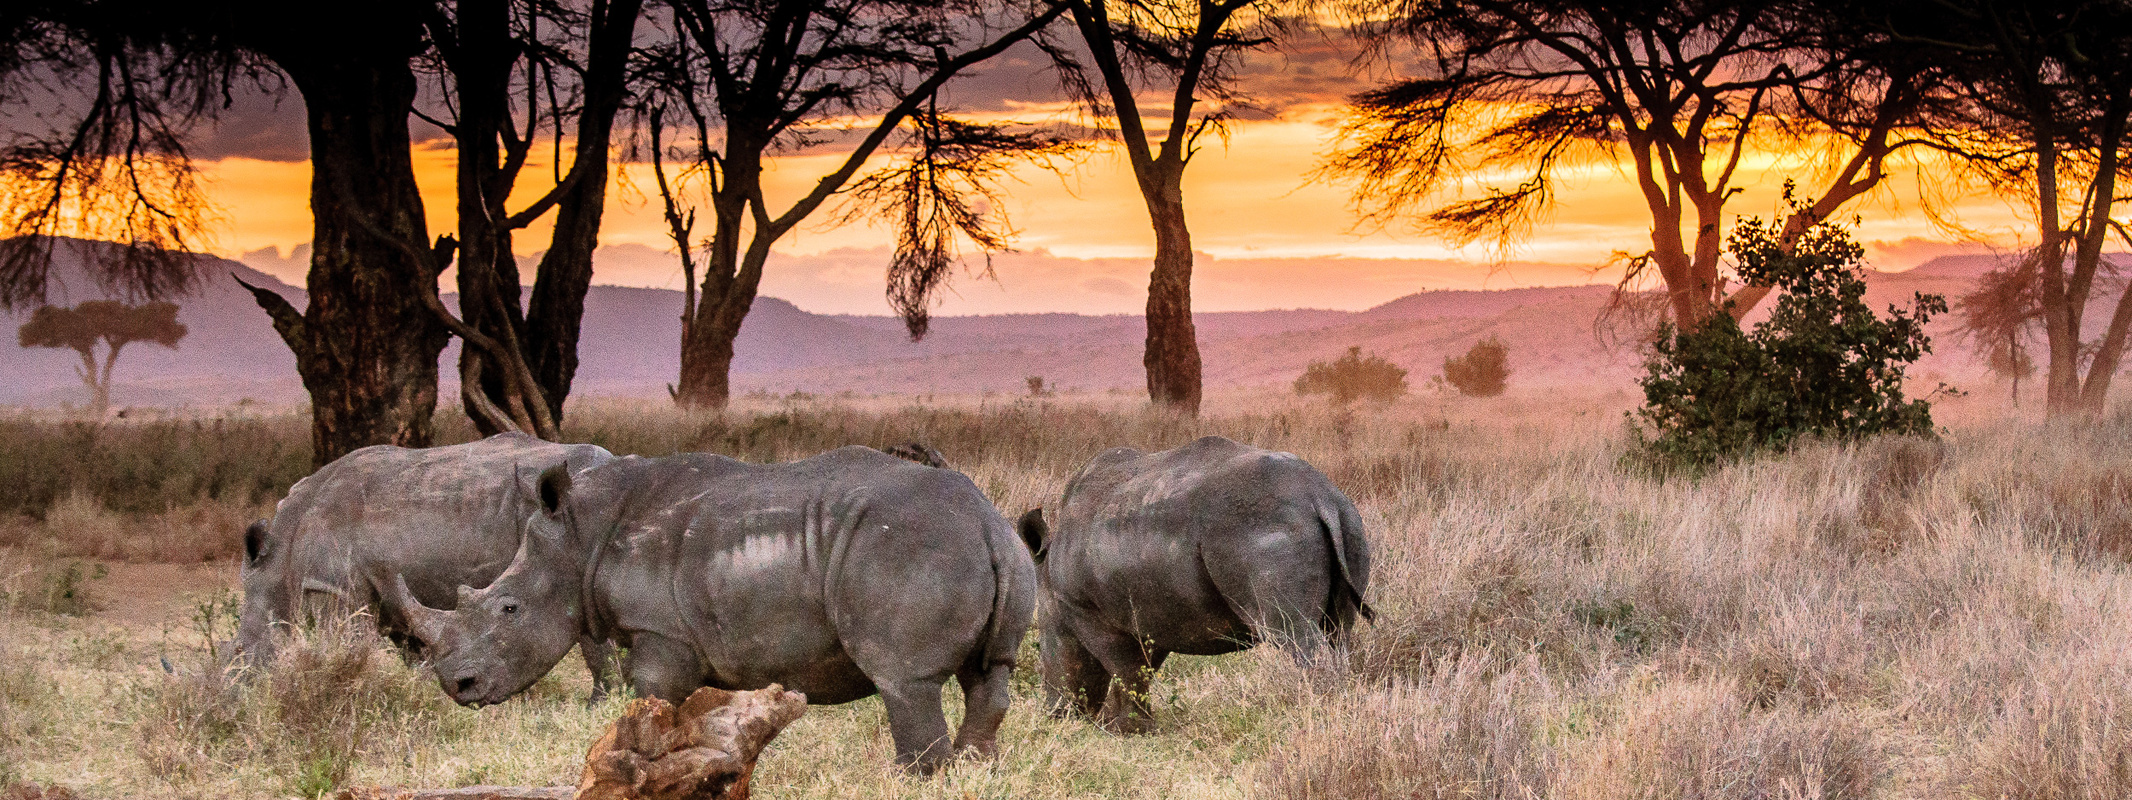 Endangered Rhinos | Lewa Wilderness, Kenya | Photo: Angela Neal Grove